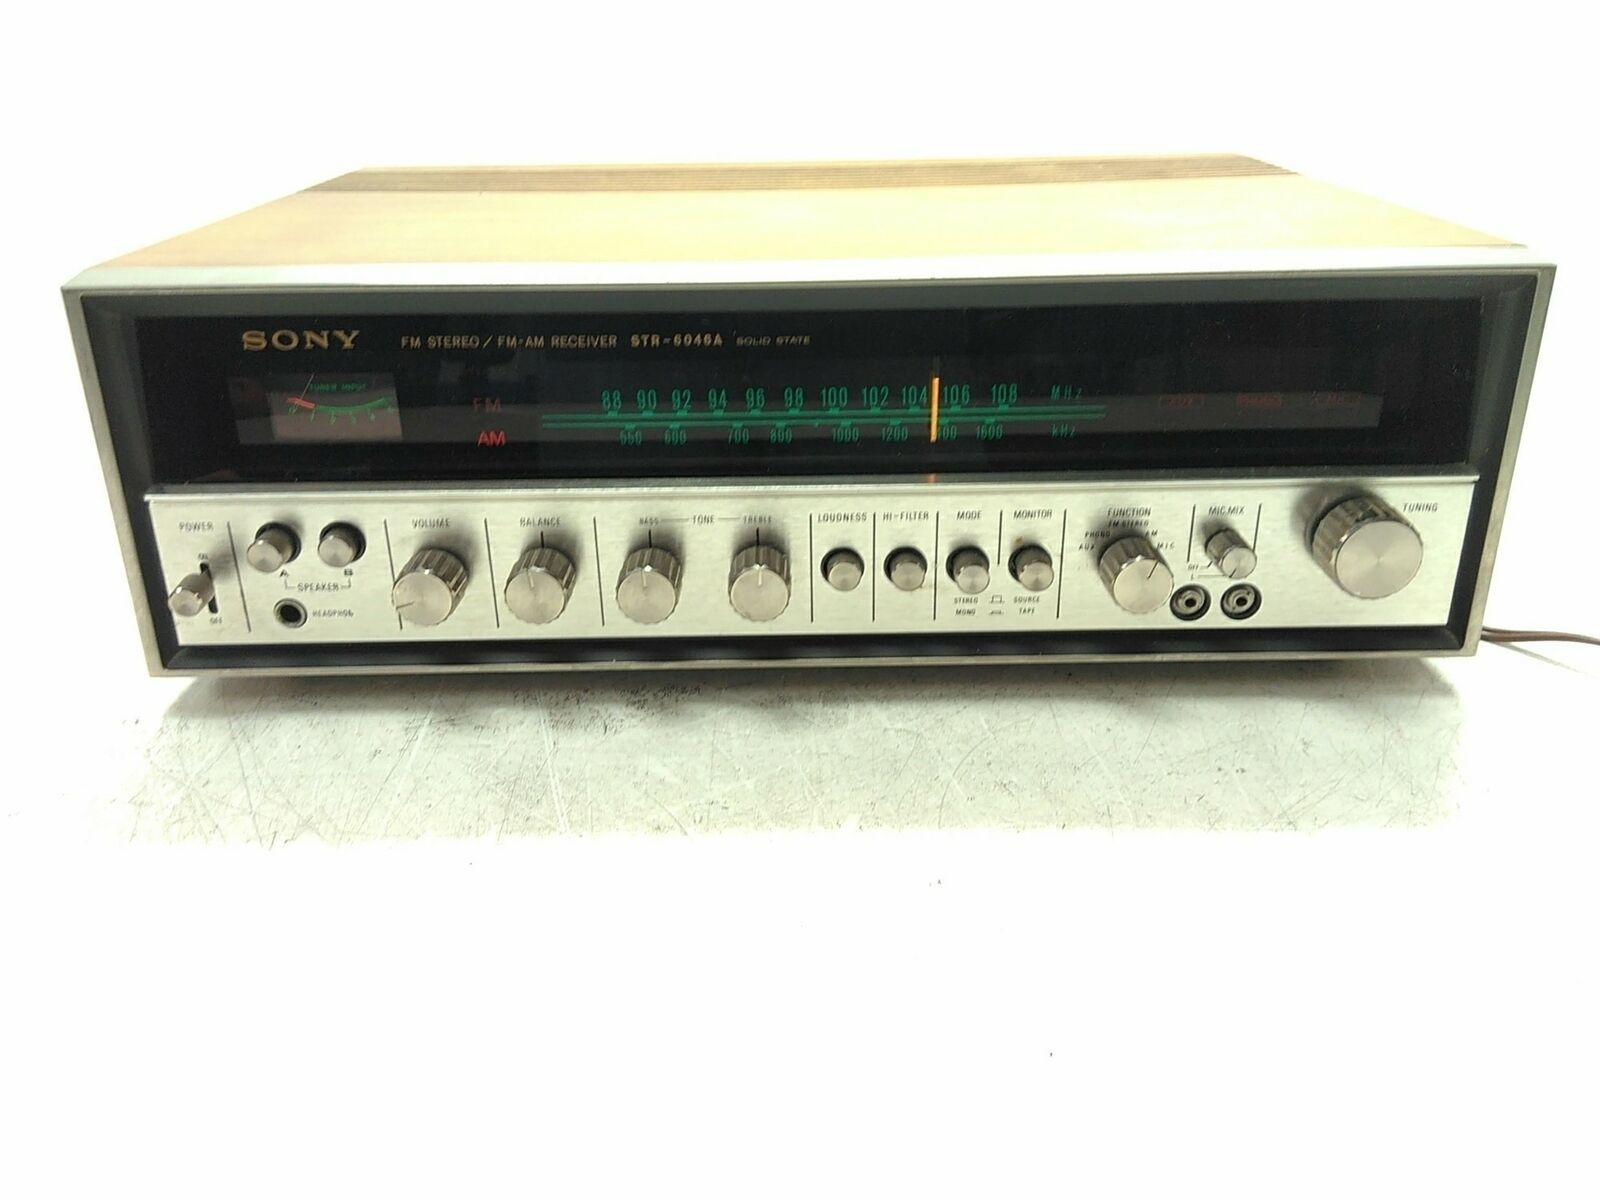 Defective Sony STR-6046A FM-AM Solid State Receiver Loud Static AS-IS Parts - $79.20